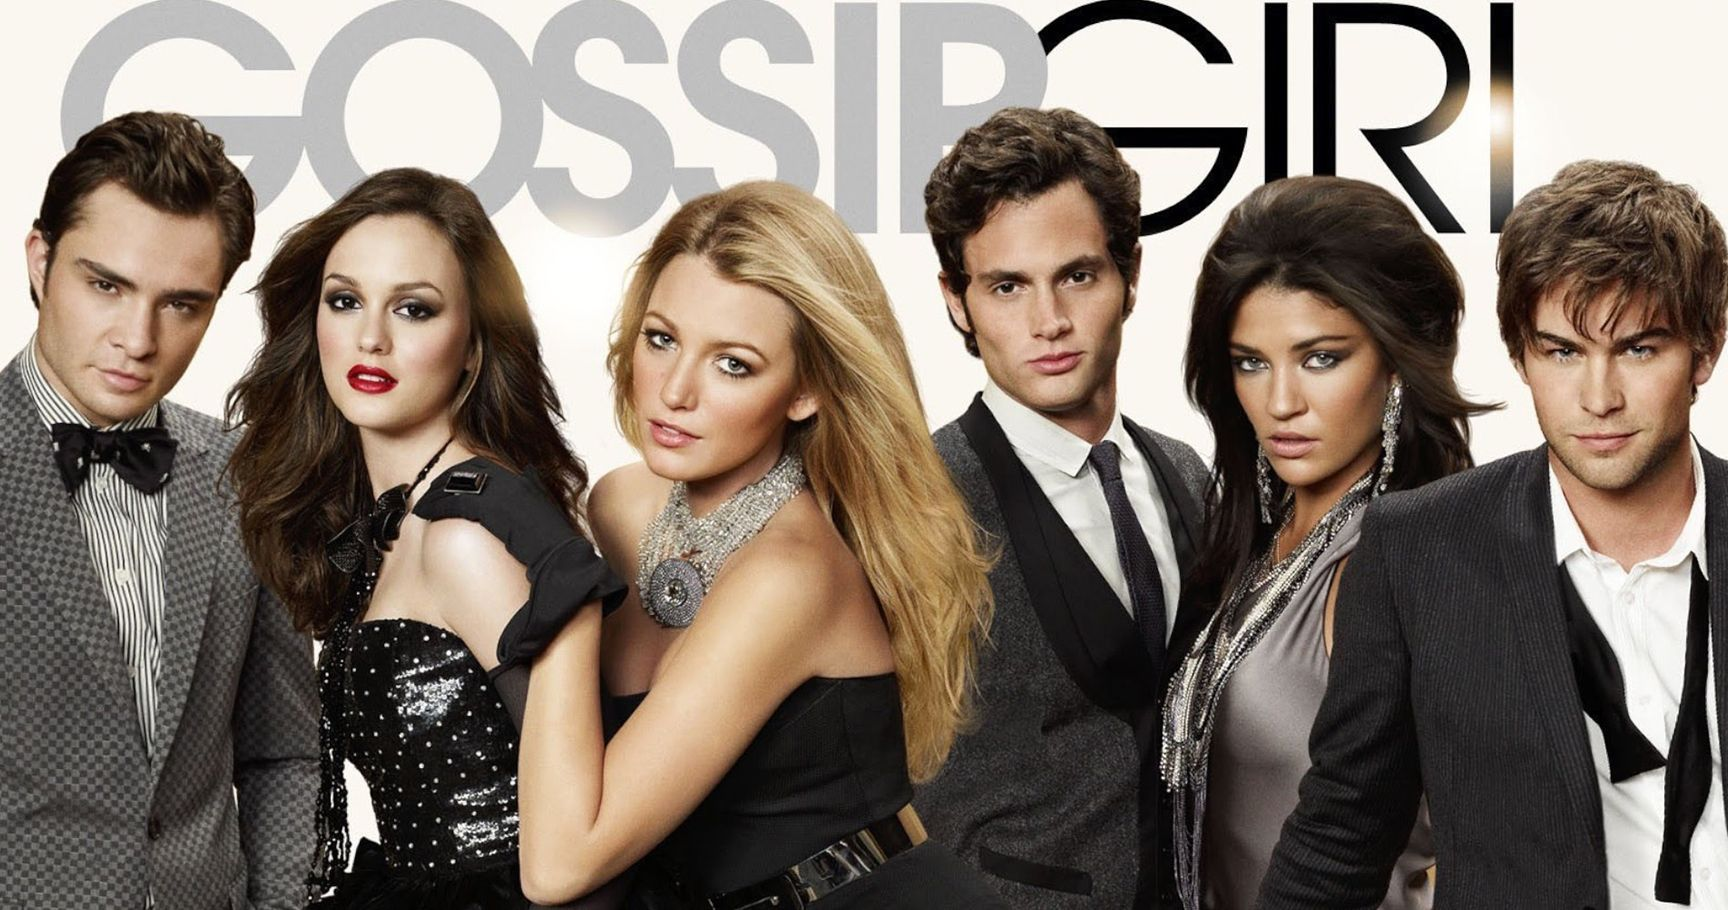 Only A True 'Gossip Girl' Fan Can Get Over 50% On This Quiz!